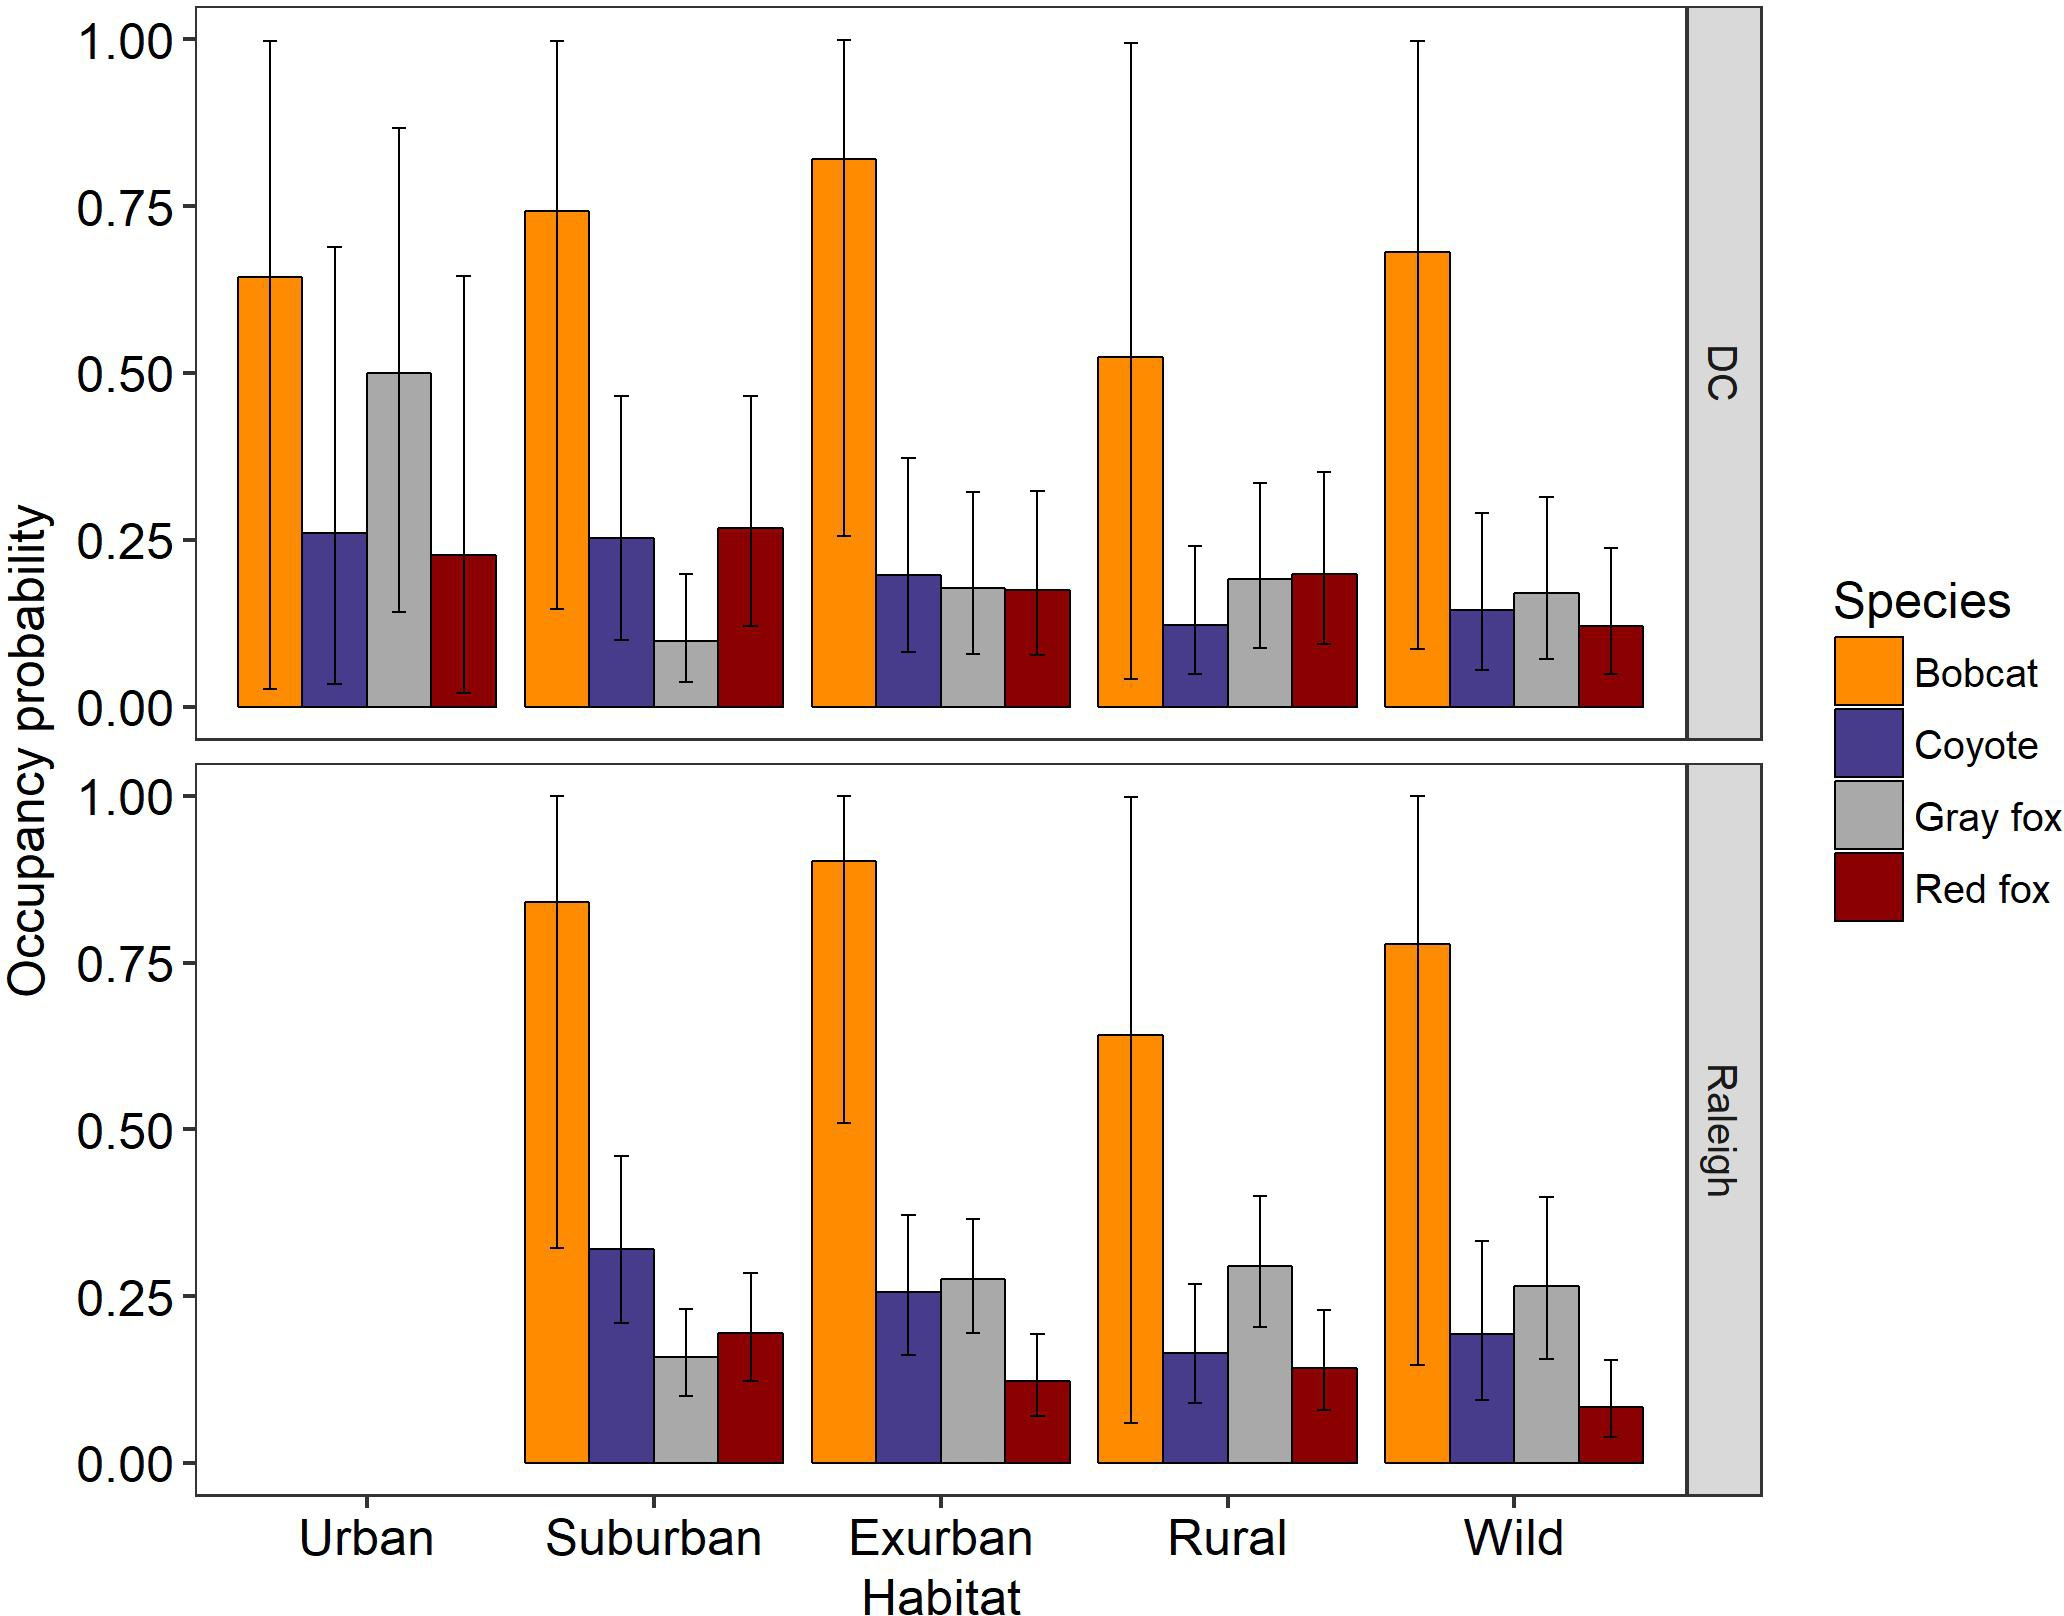 Mammal communities are larger and more diverse in moderately